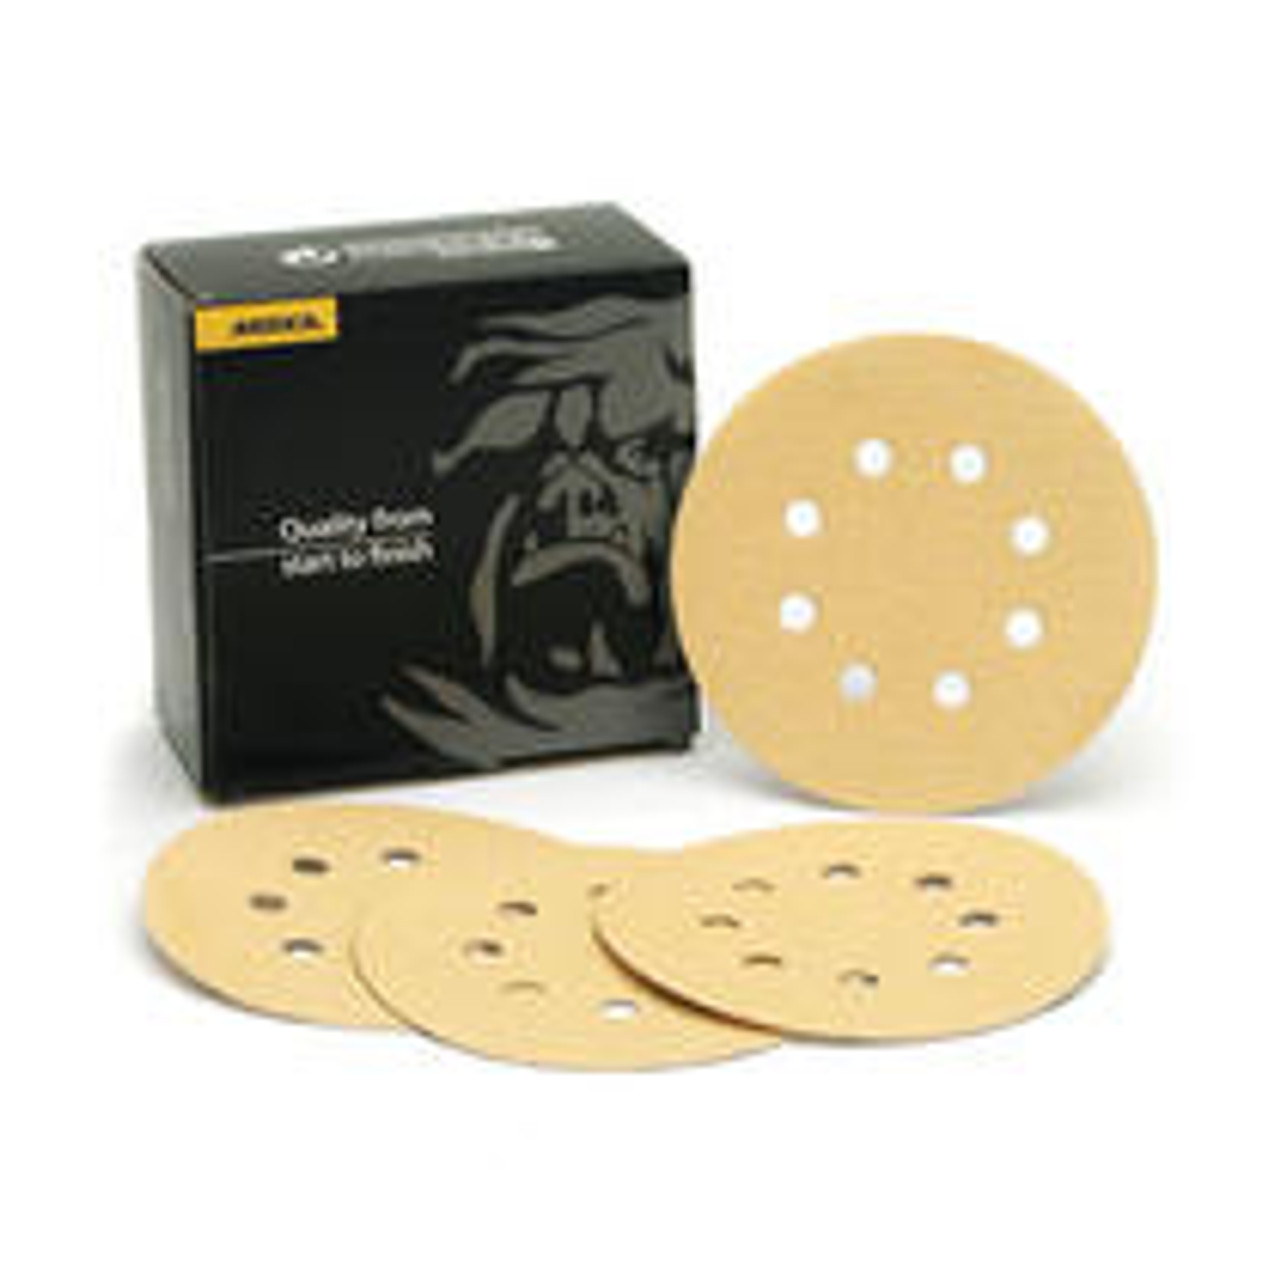 "Mirka 23-615-100 - Bulldog Gold 5"" 8 Hole Grip Vacuum Disc 100 Grit (Qty 50 per pk/bx)"